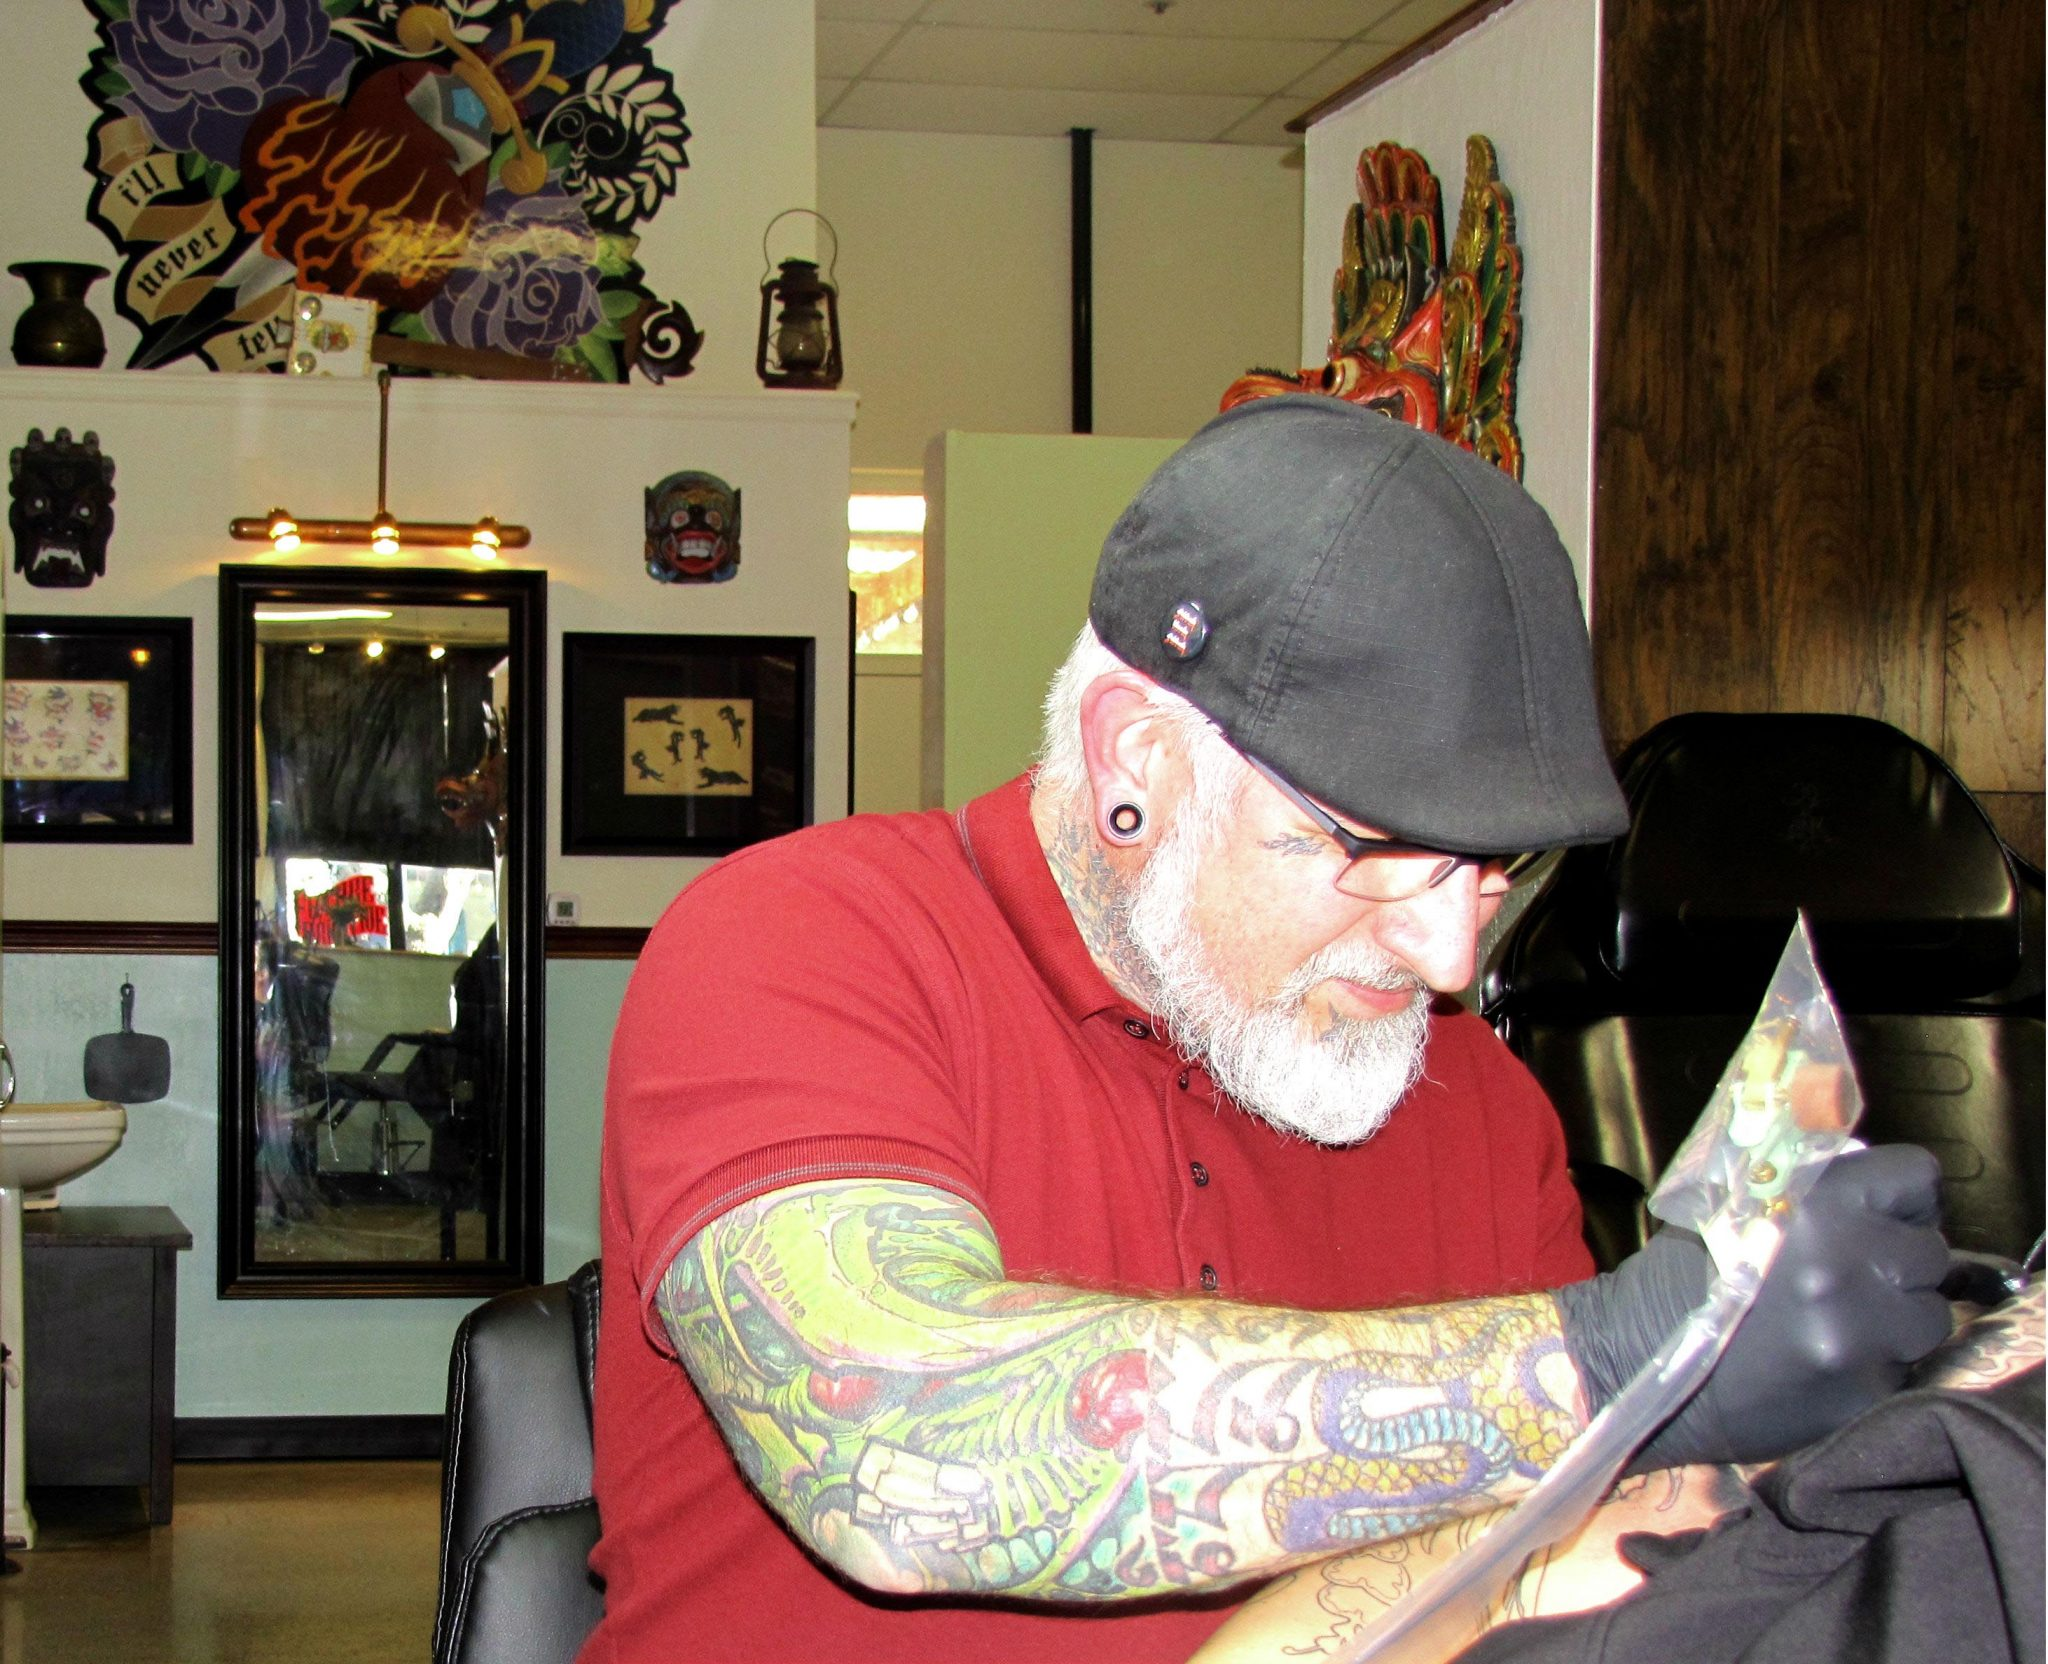 Tee Jay  Hernandez works on a tattoo at his shop on Main Street in downtown Martinez. Hernandez, a renowned artist,  services a nation-wide clientele. (HANNAH HATCH / Martinez Tribune)